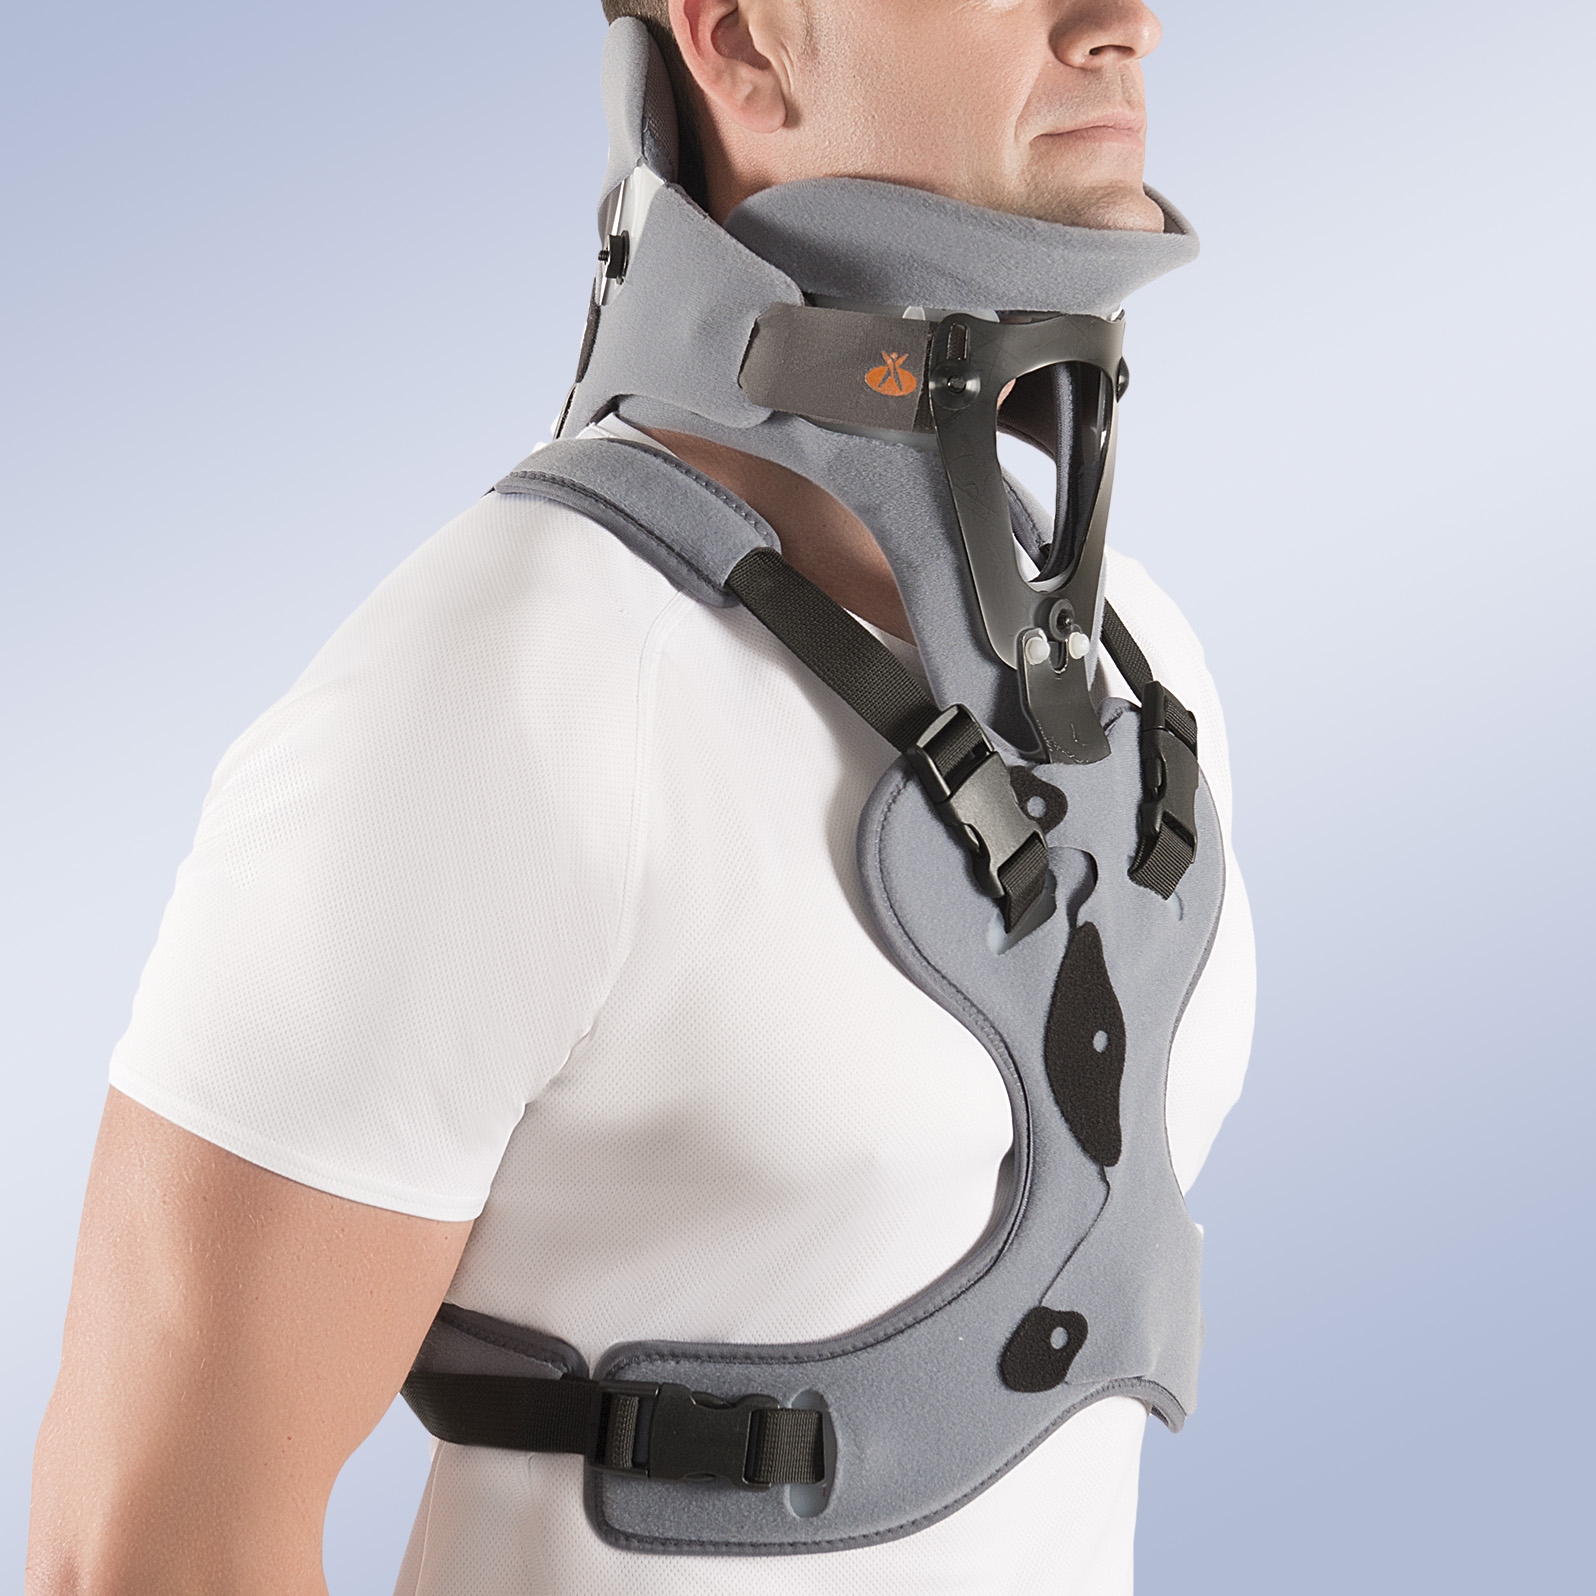 CERVICAL COLLAR WITH THORACIC SUPPORT